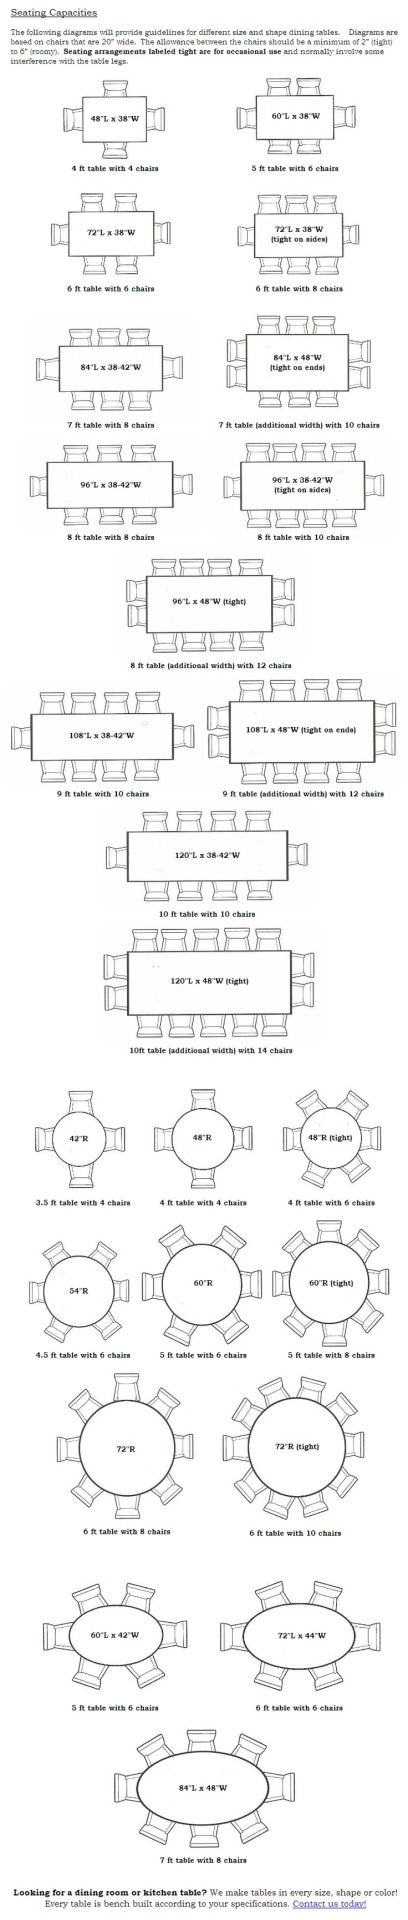 Dining Table Seating Capacities Chart By Size And Shape Because Space Planning Important More Helpful Charts